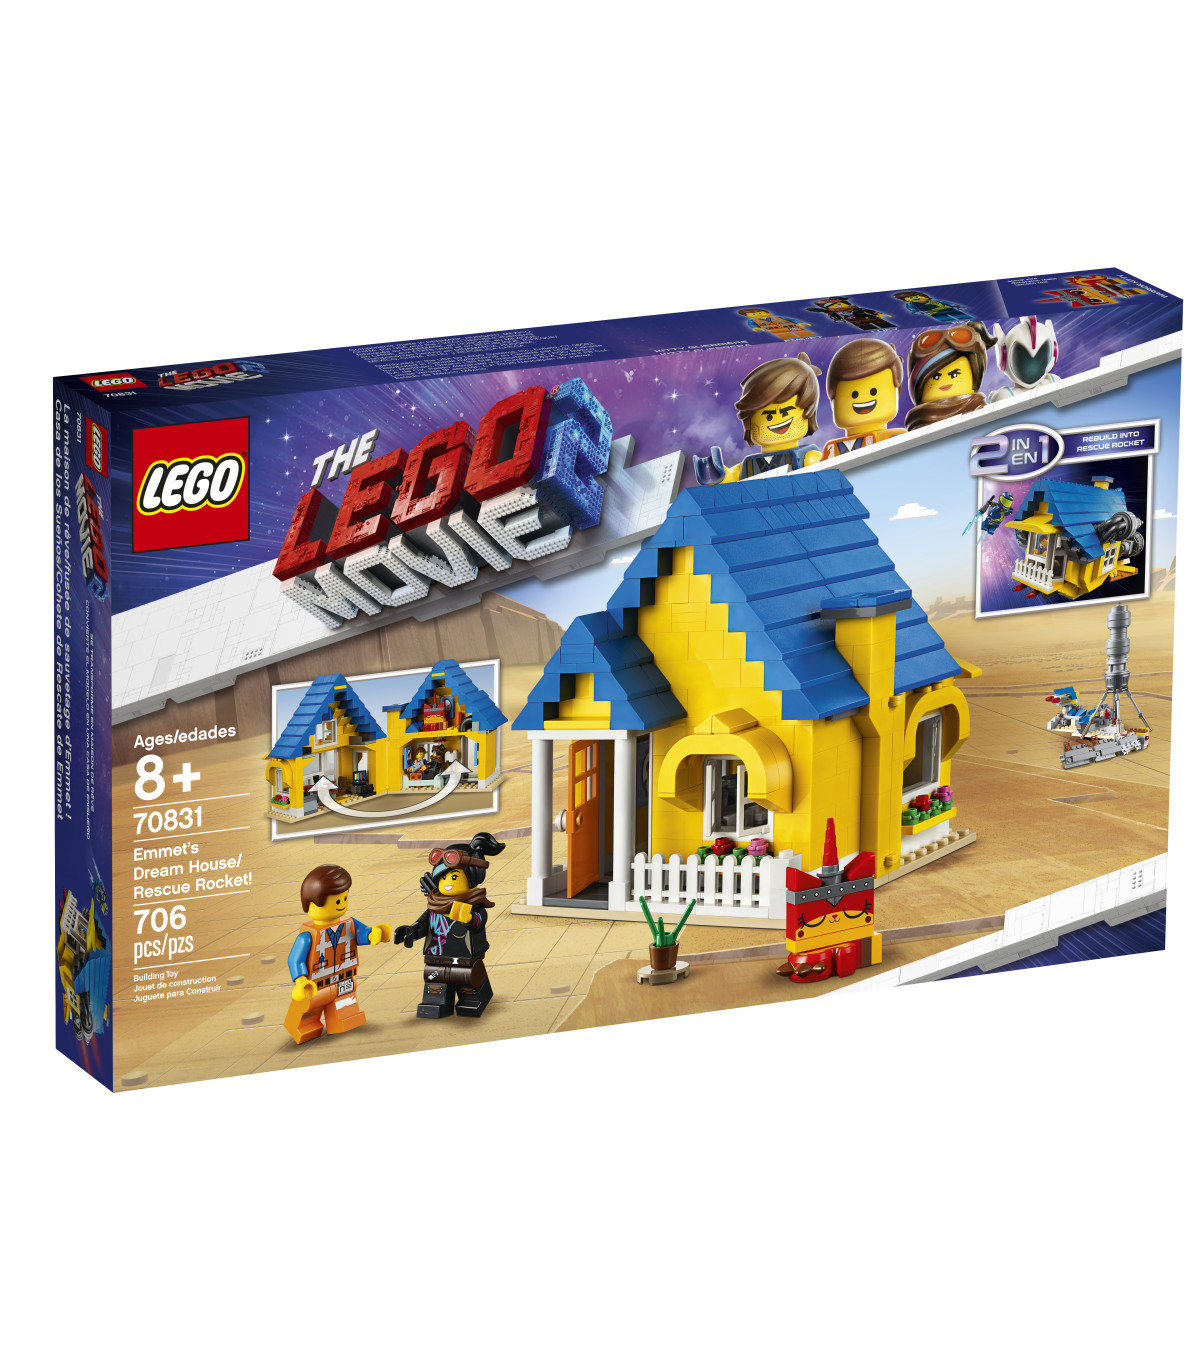 LEGO Movie Emmet\u0027s Dream House/Rescue Rocket! 70831